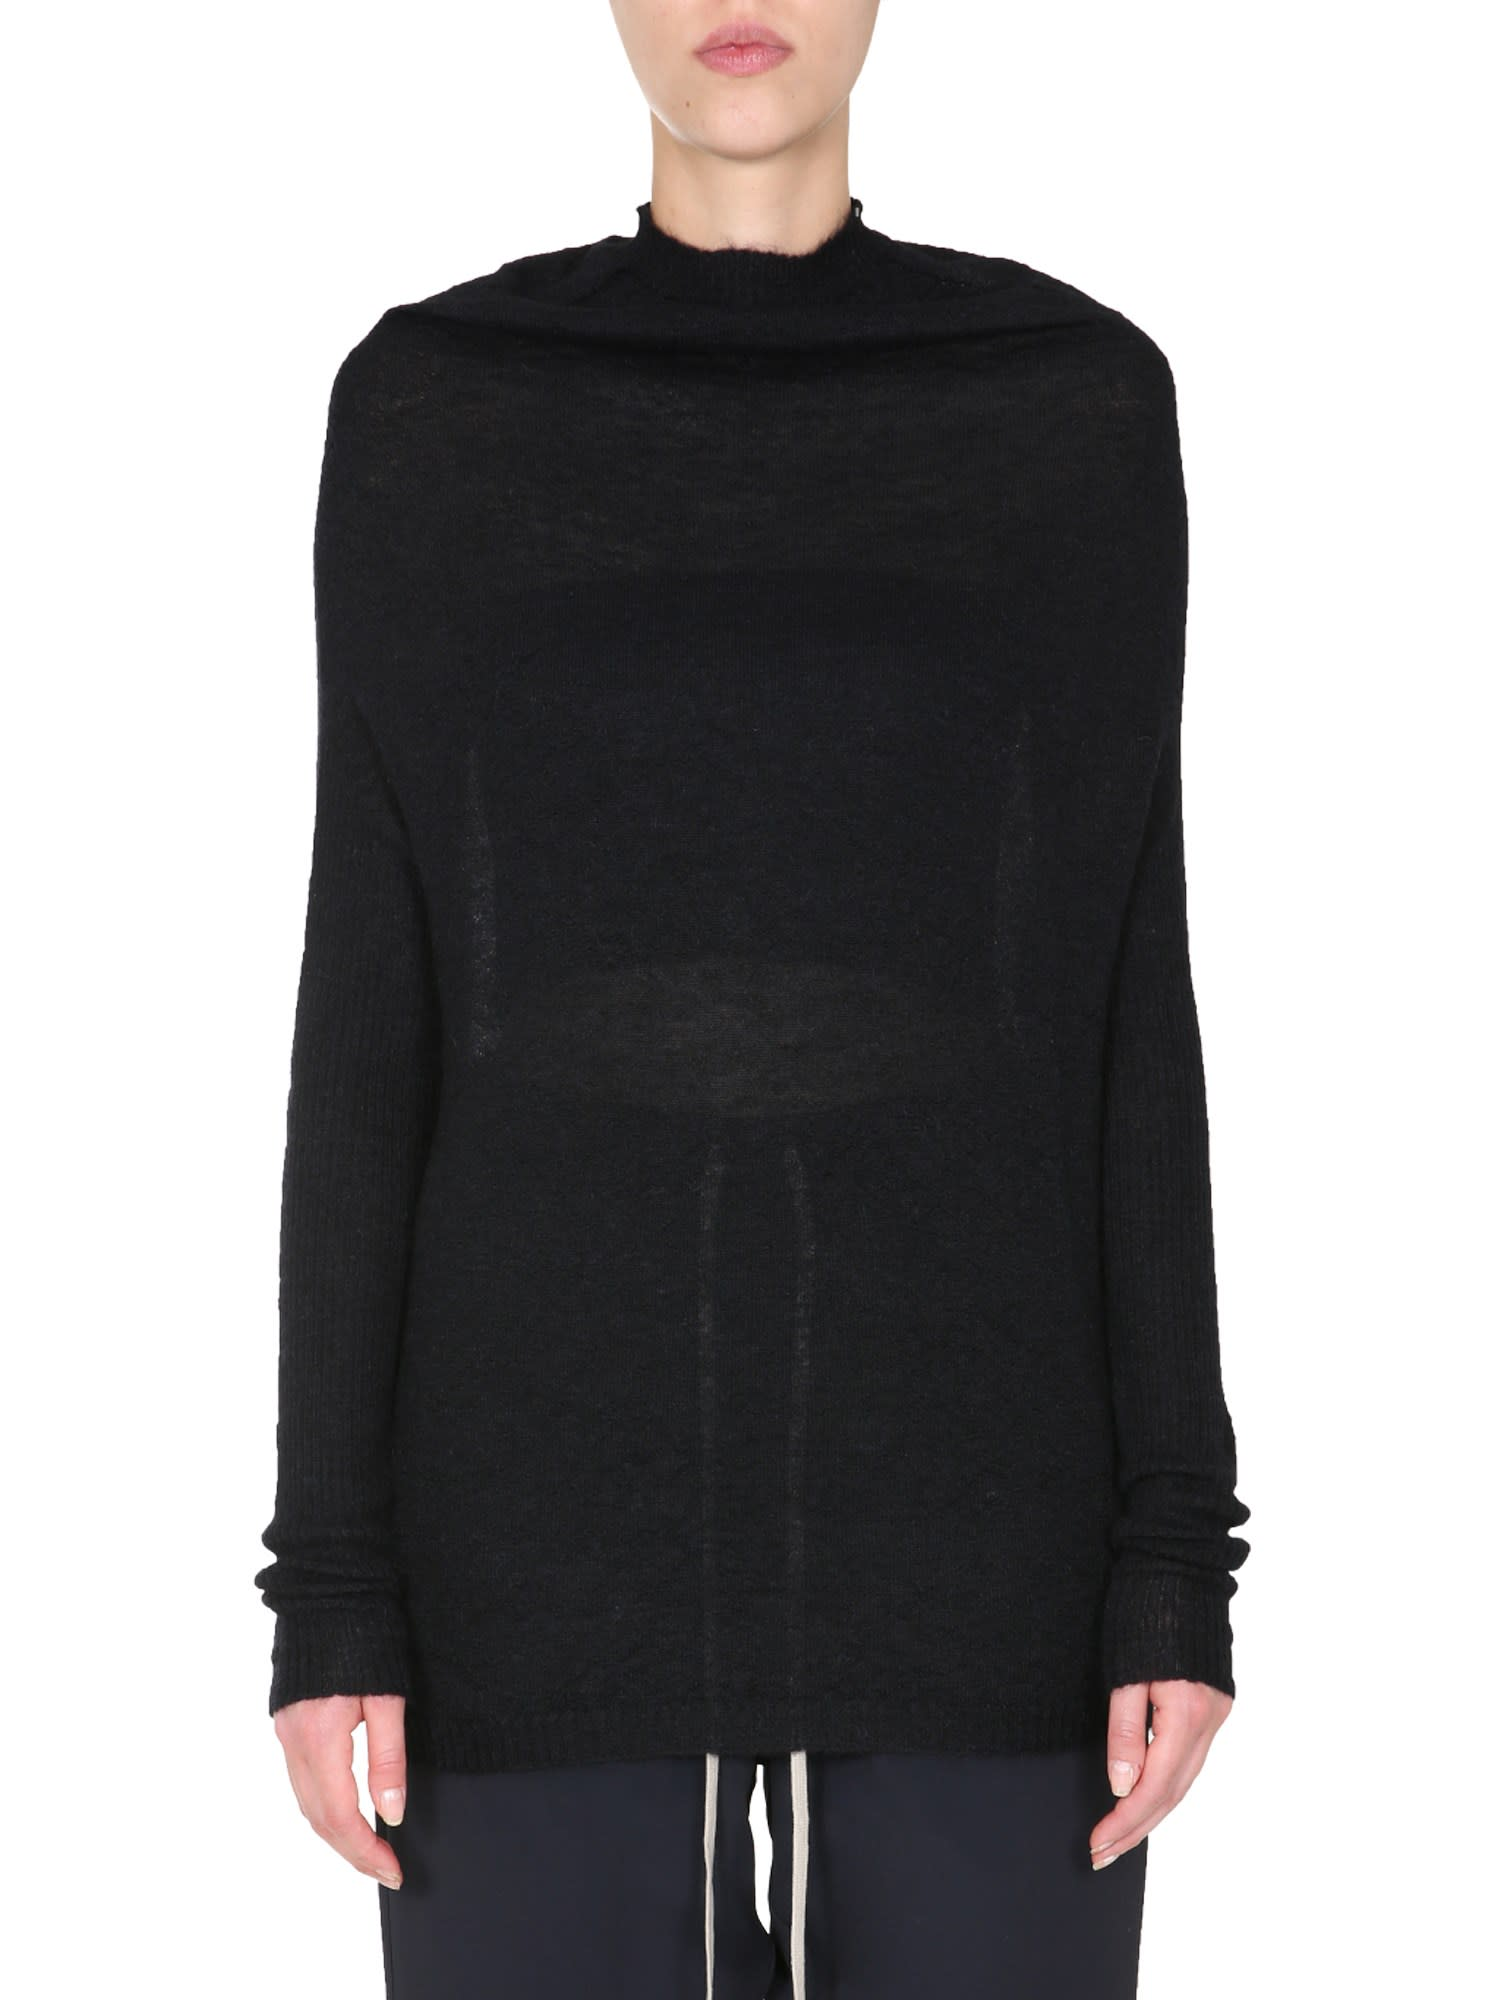 Rick Owens Crater Sweater